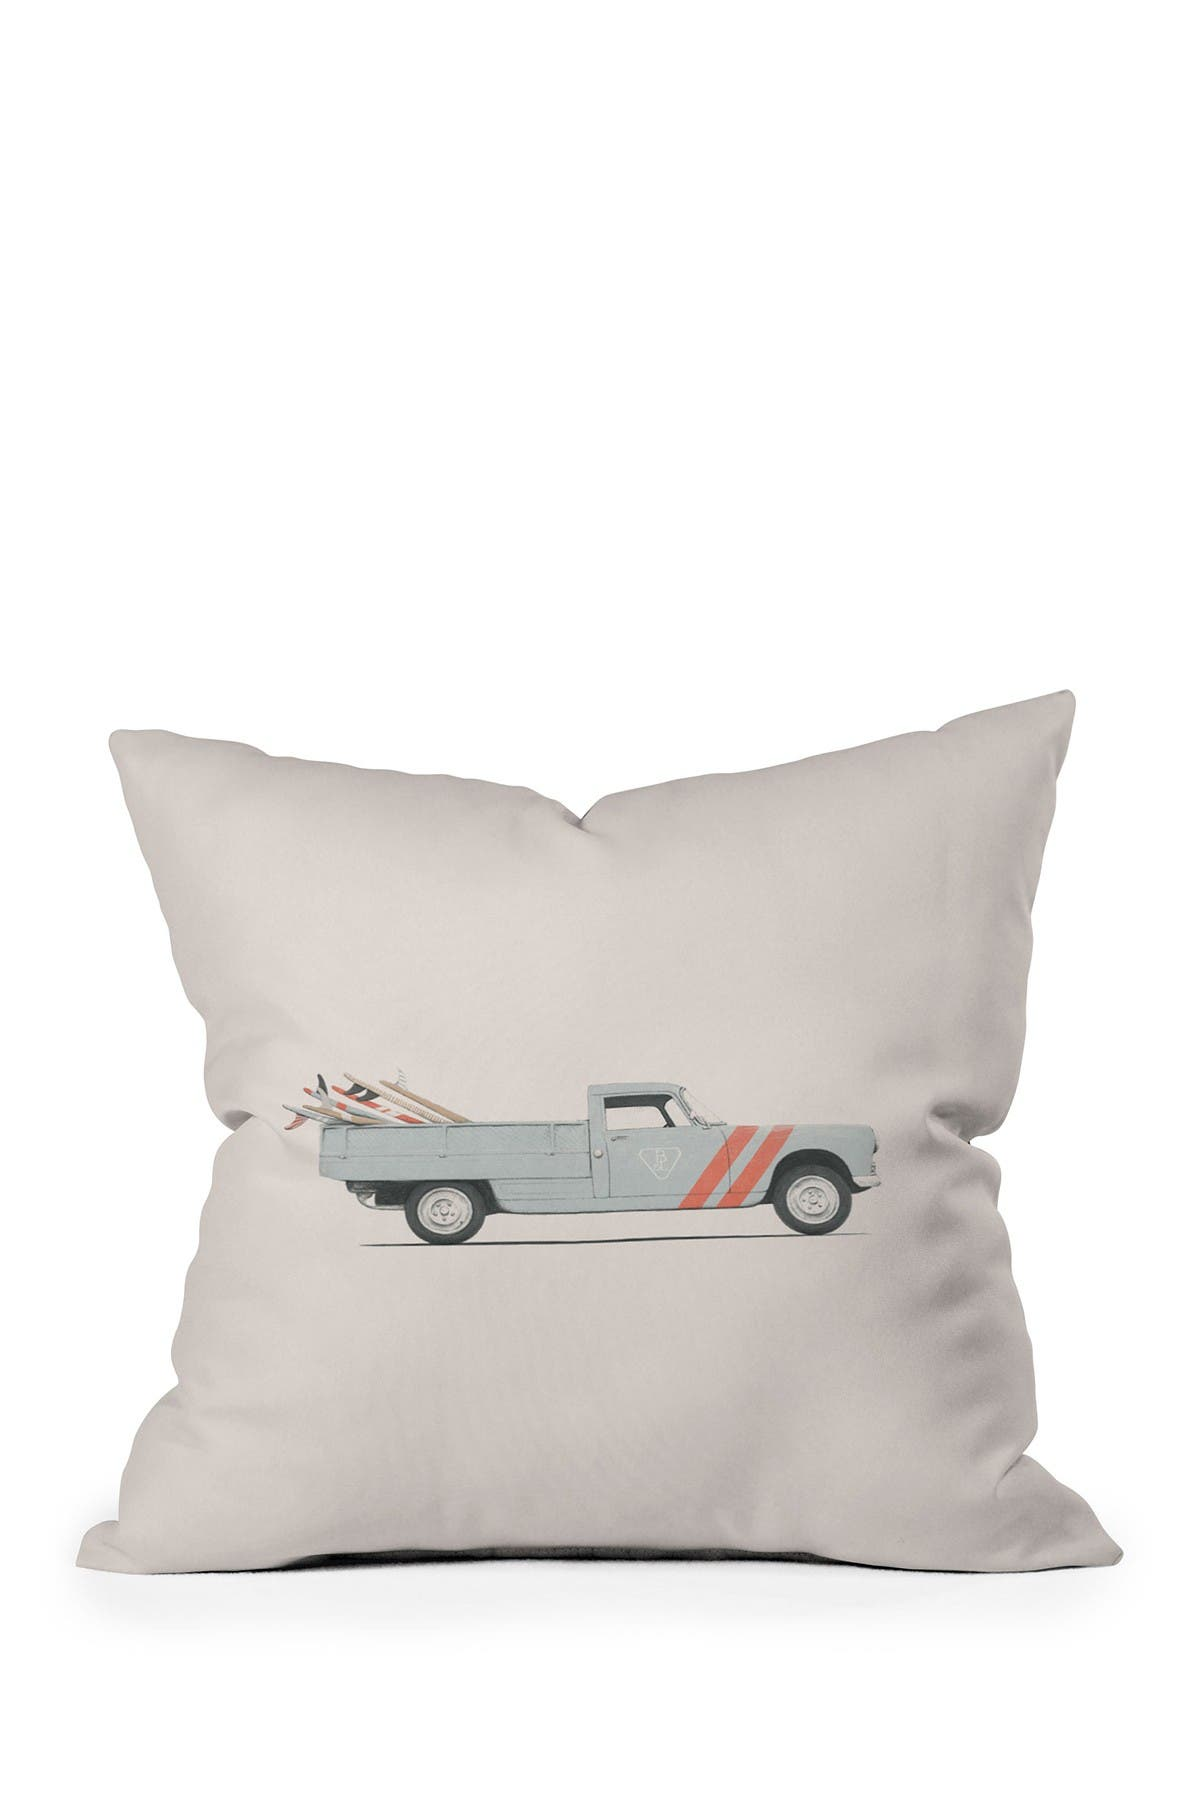 Image of Deny Designs Florent Bodart Surfboard Pick Up Van Square Throw Pillow